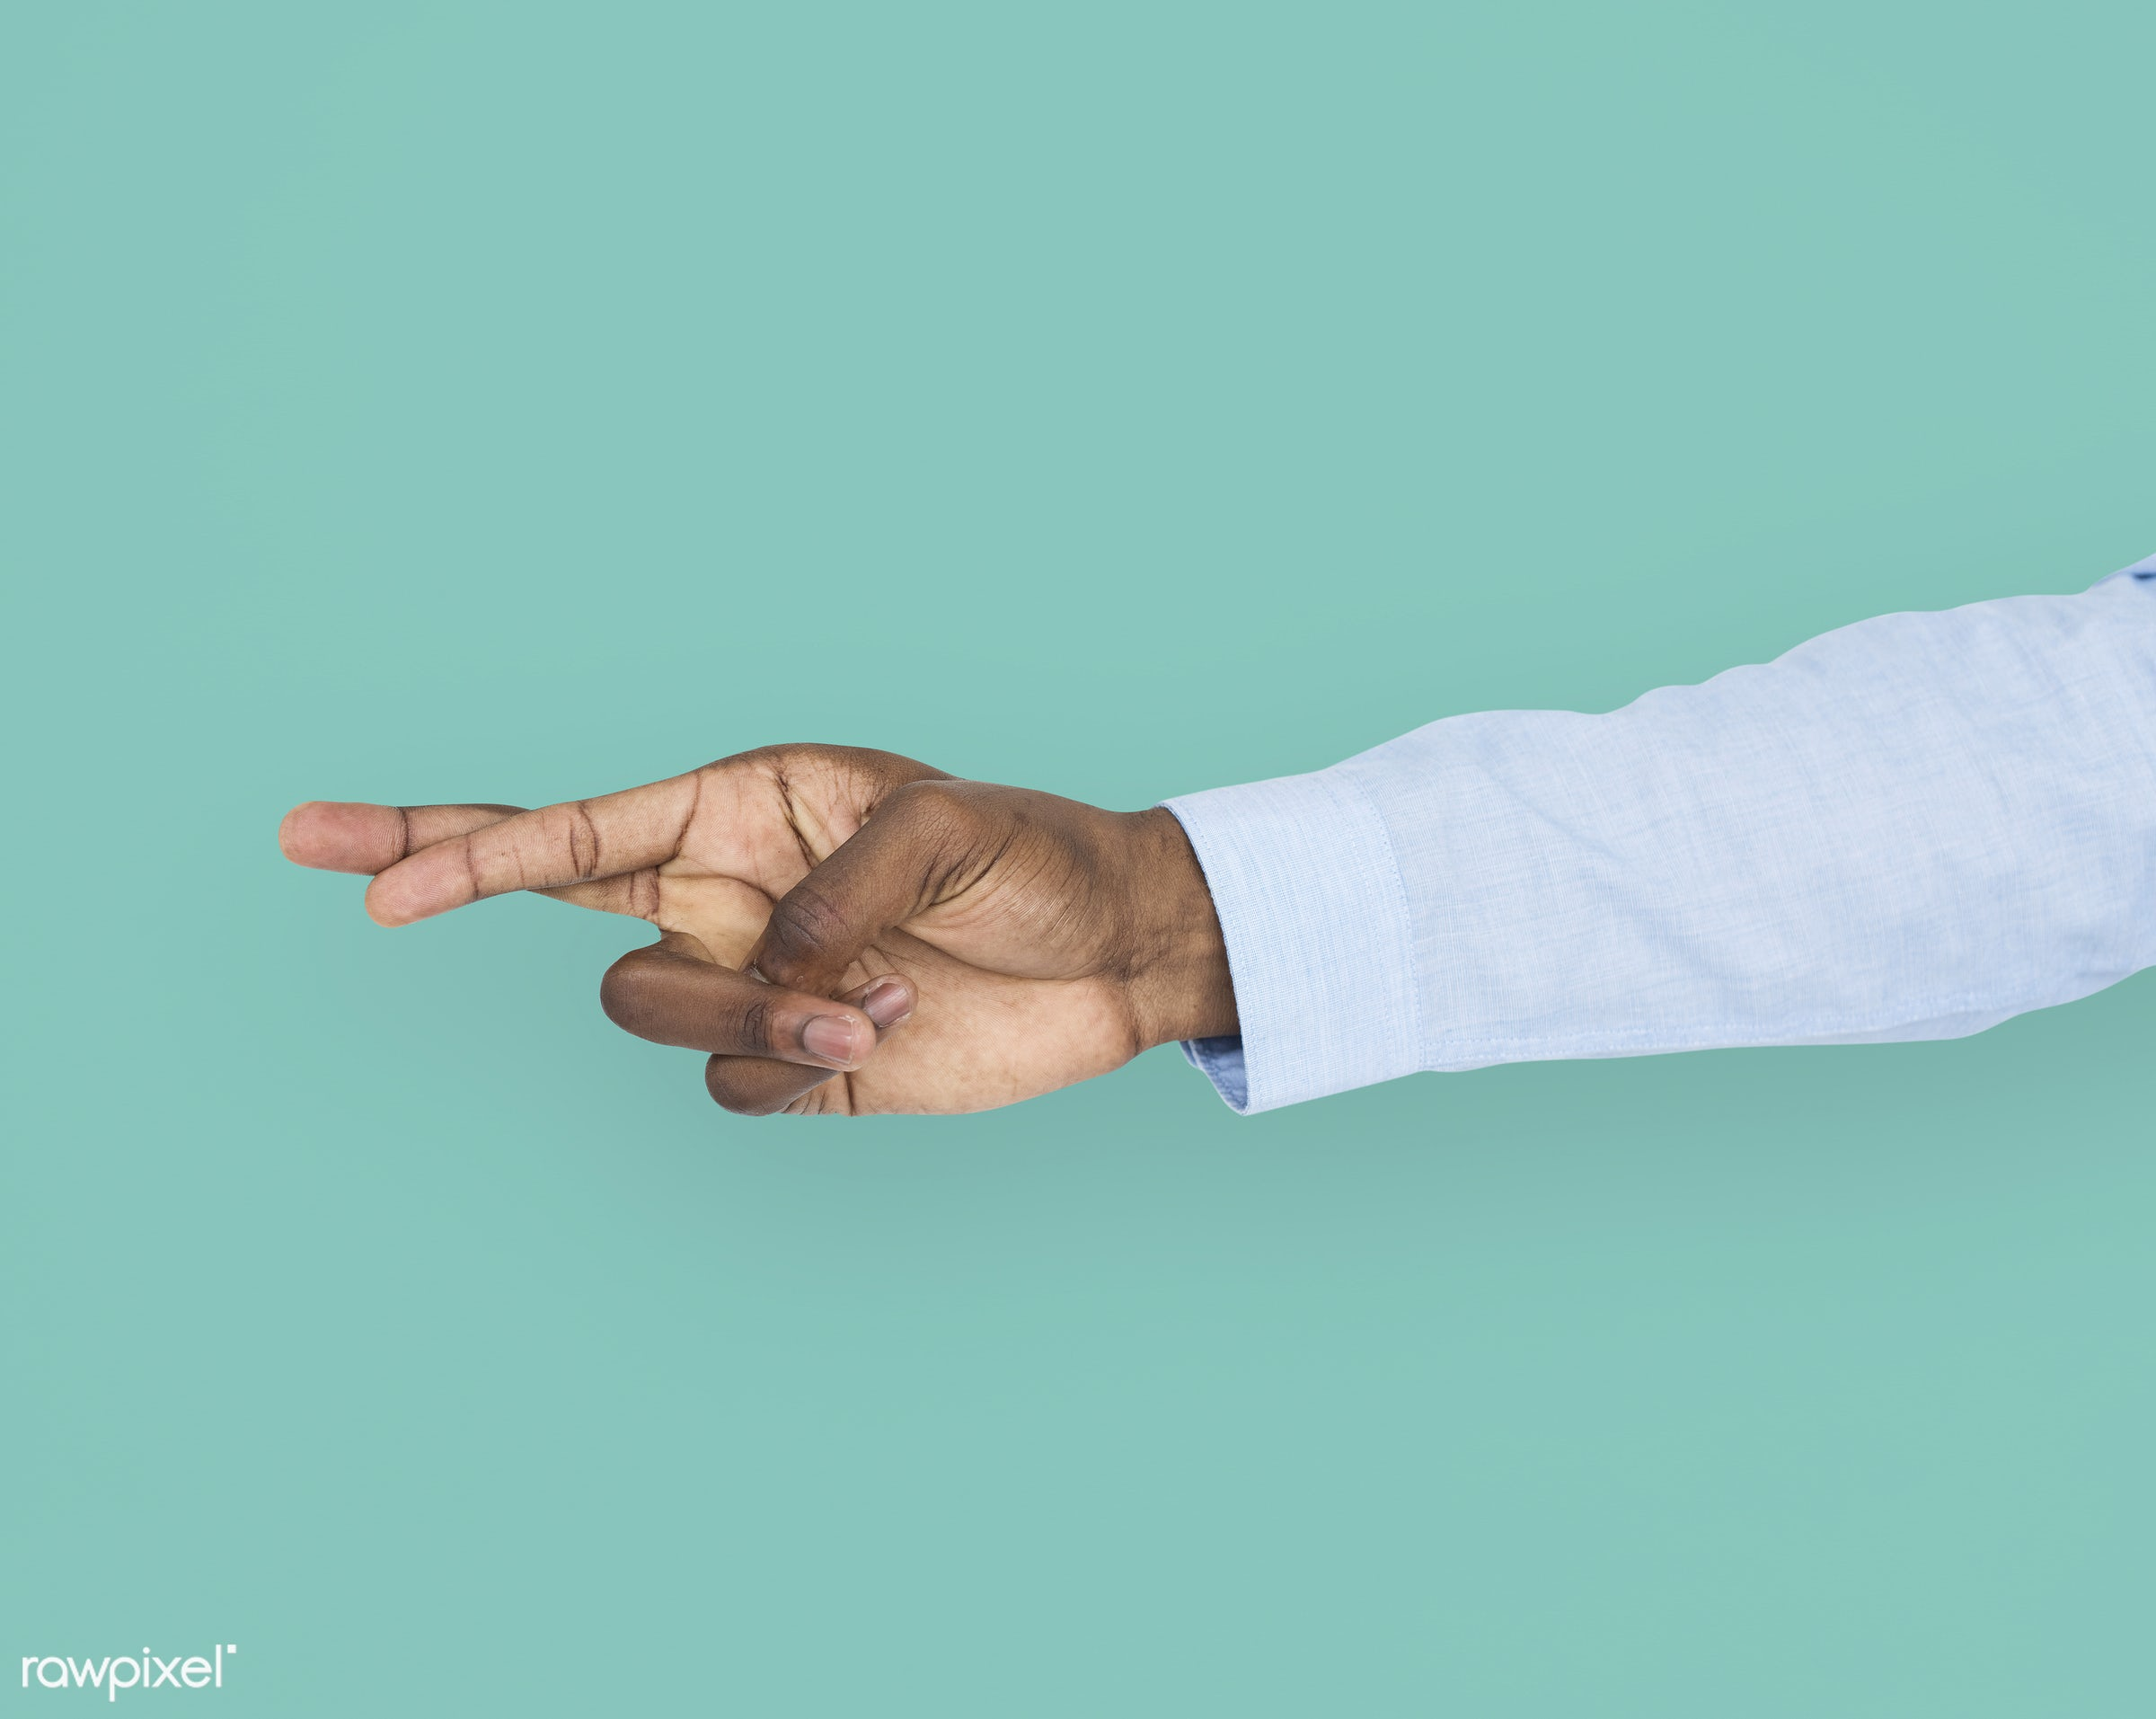 person, cut-out, race, hand, untruth, dishonesty, showing, isolated, african descent, green, luck, gesture, finger, fingers...